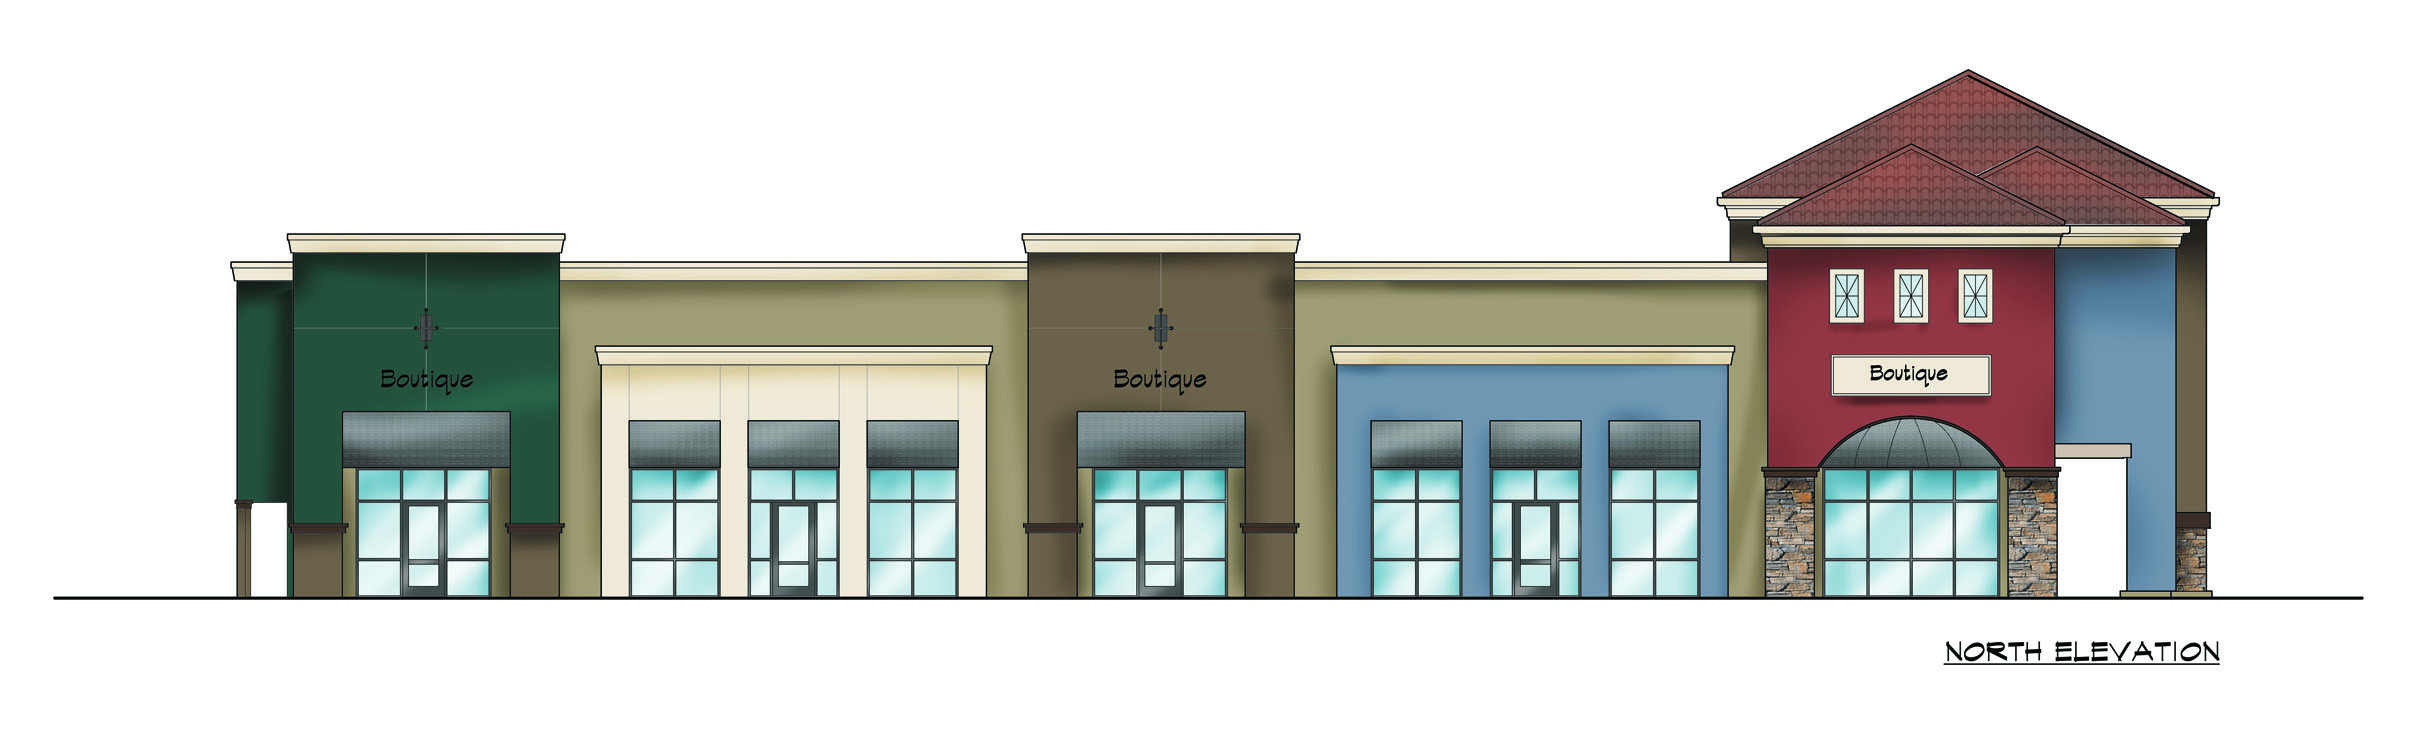 New Earth Market: north elevation